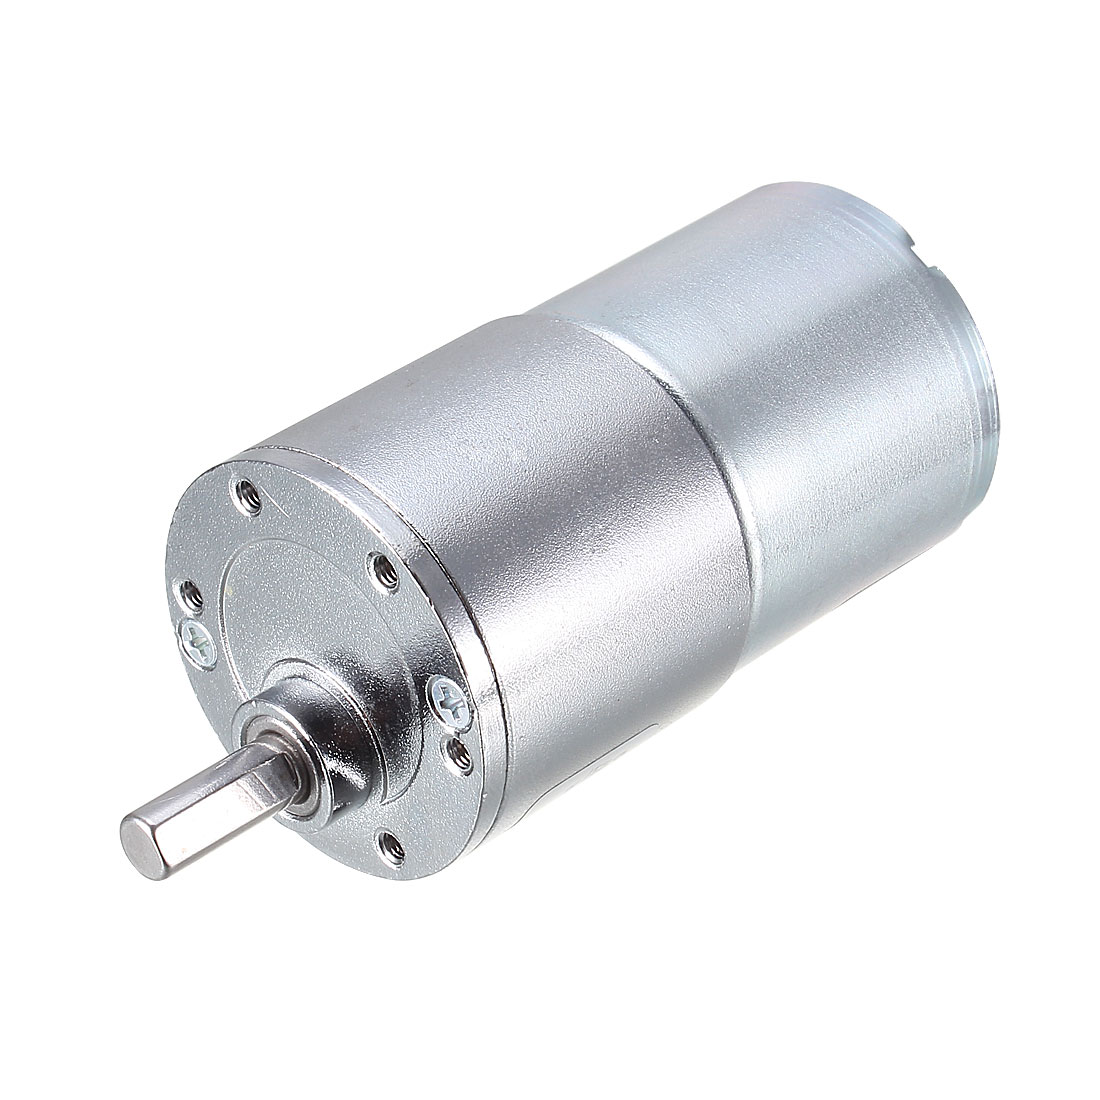 DC 12V 10RPM Micro Gear Box Motor Speed Reduction Electric Gearbox Eccentric Output Shaft